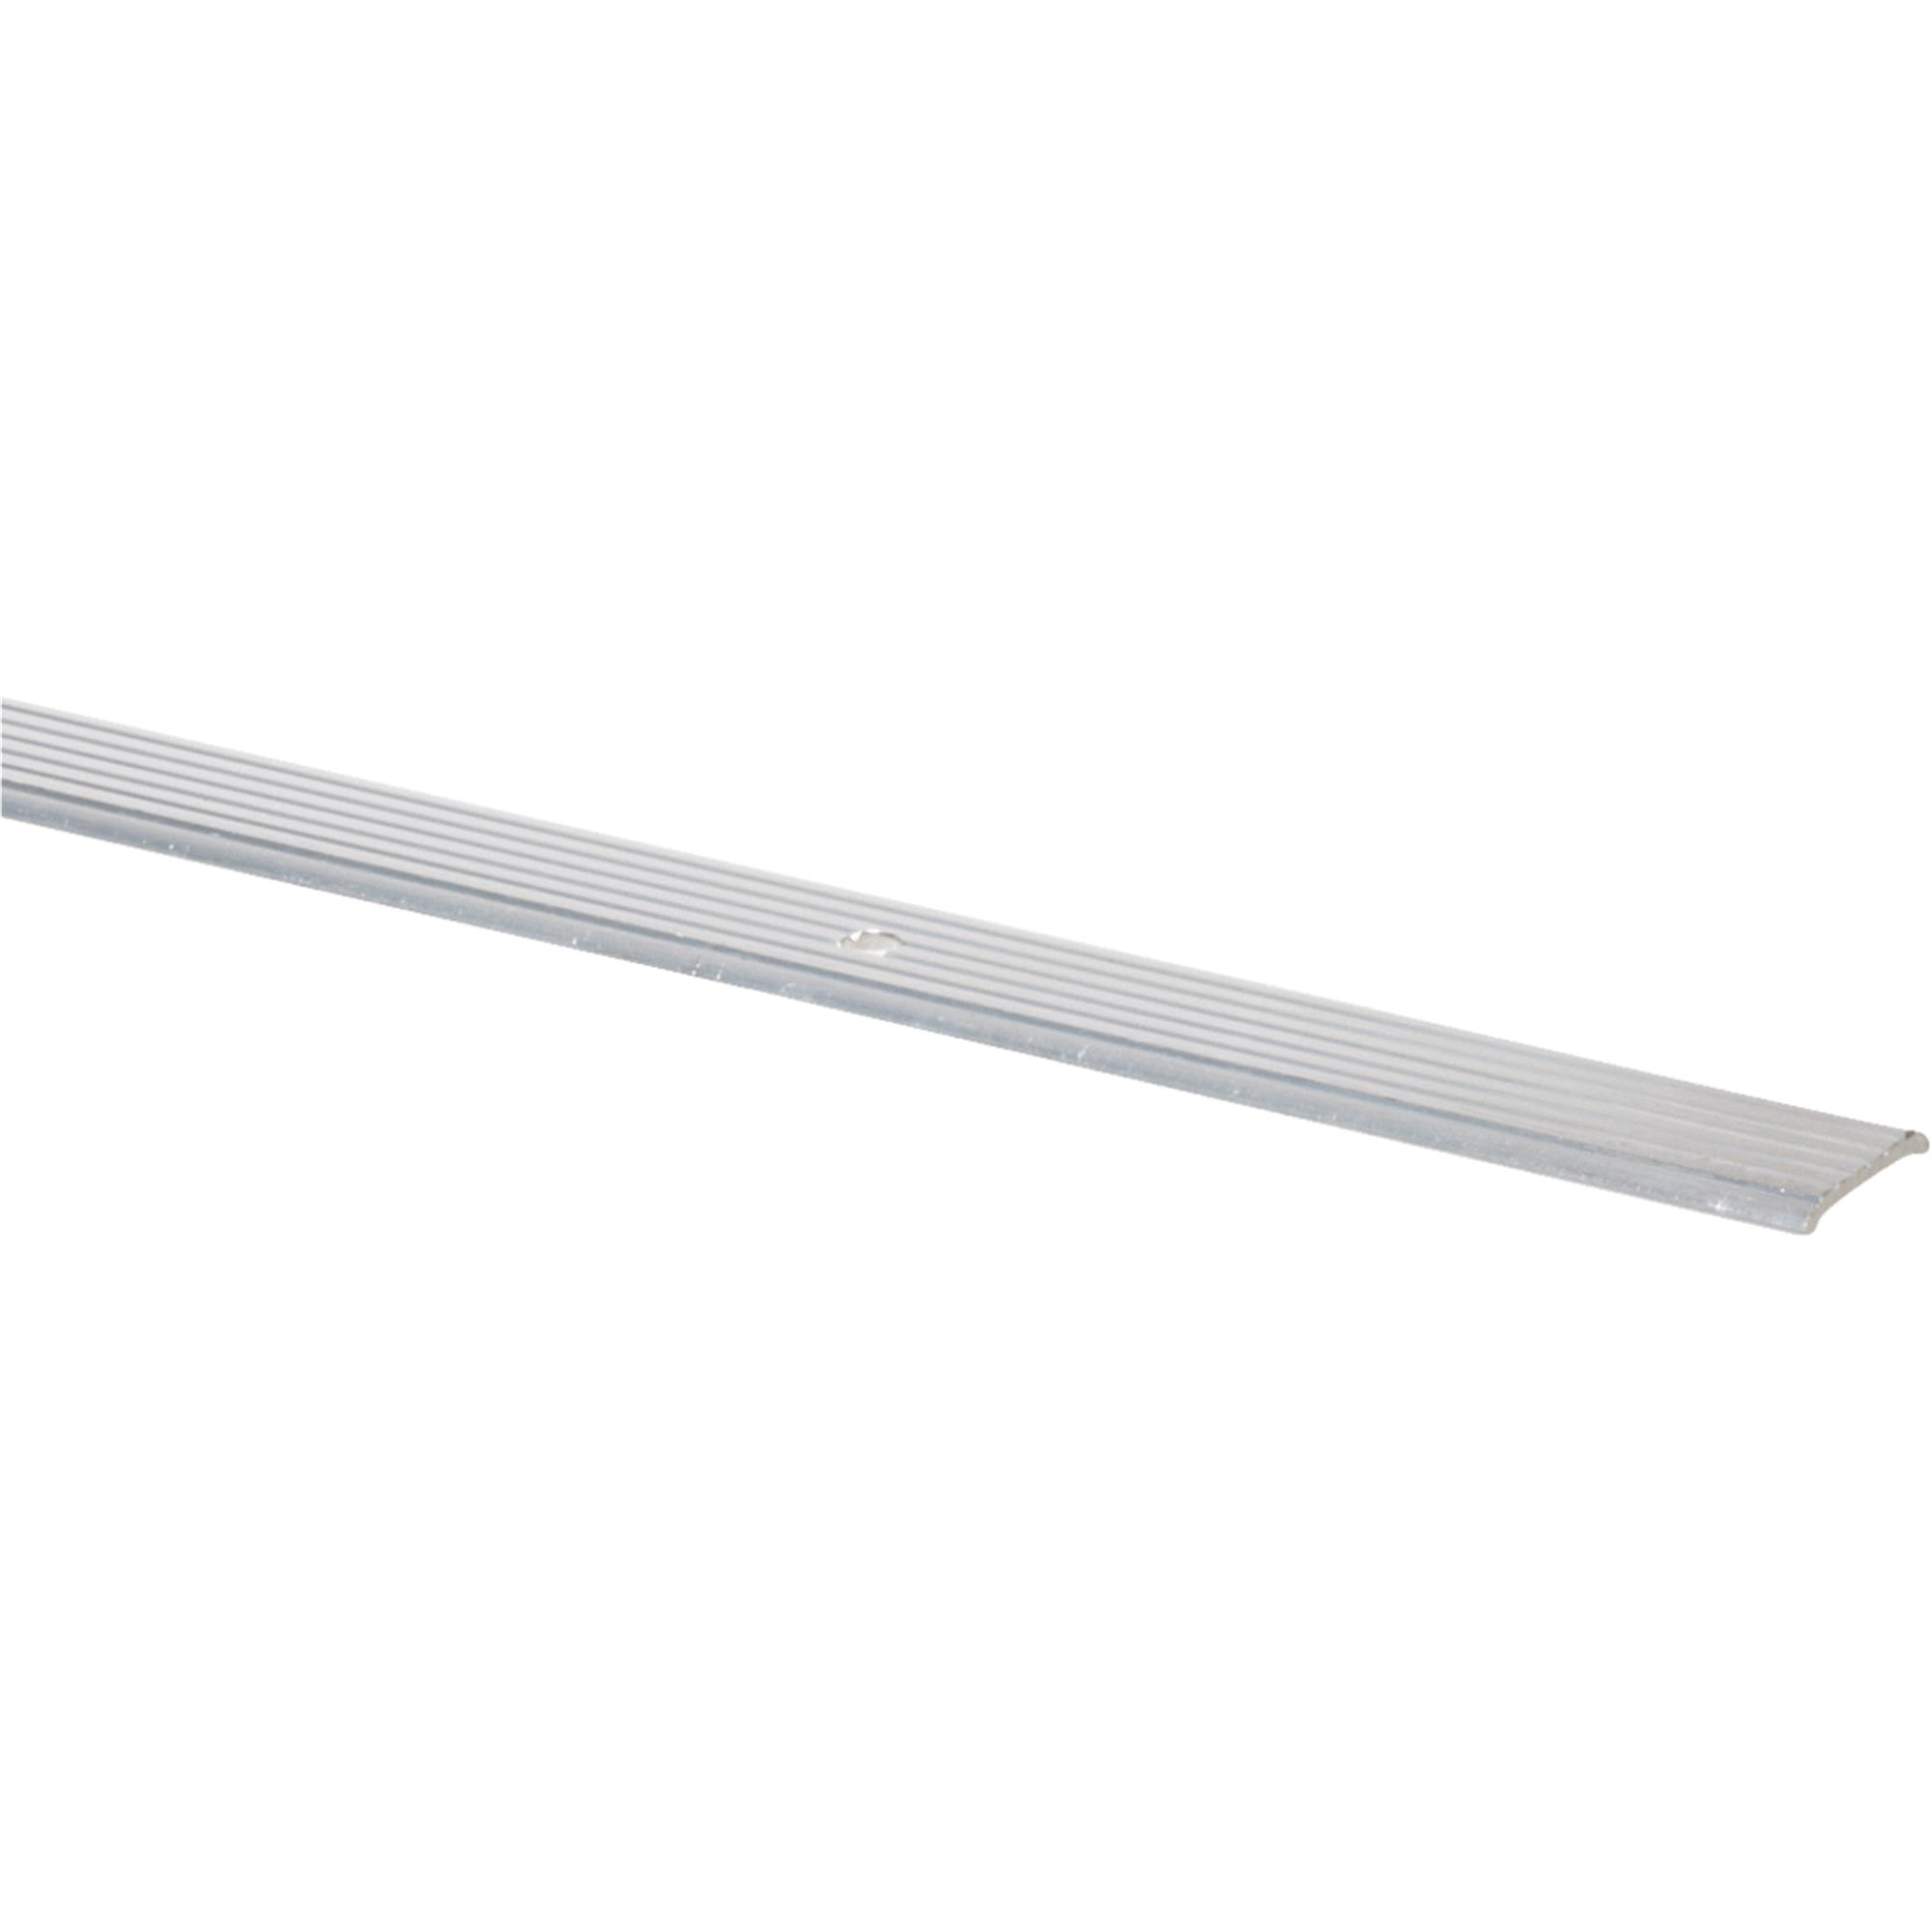 M-D Building Products 40132 1-1//4-Inch by 36-Inch Seam Binder Wide Metal Decor Finish